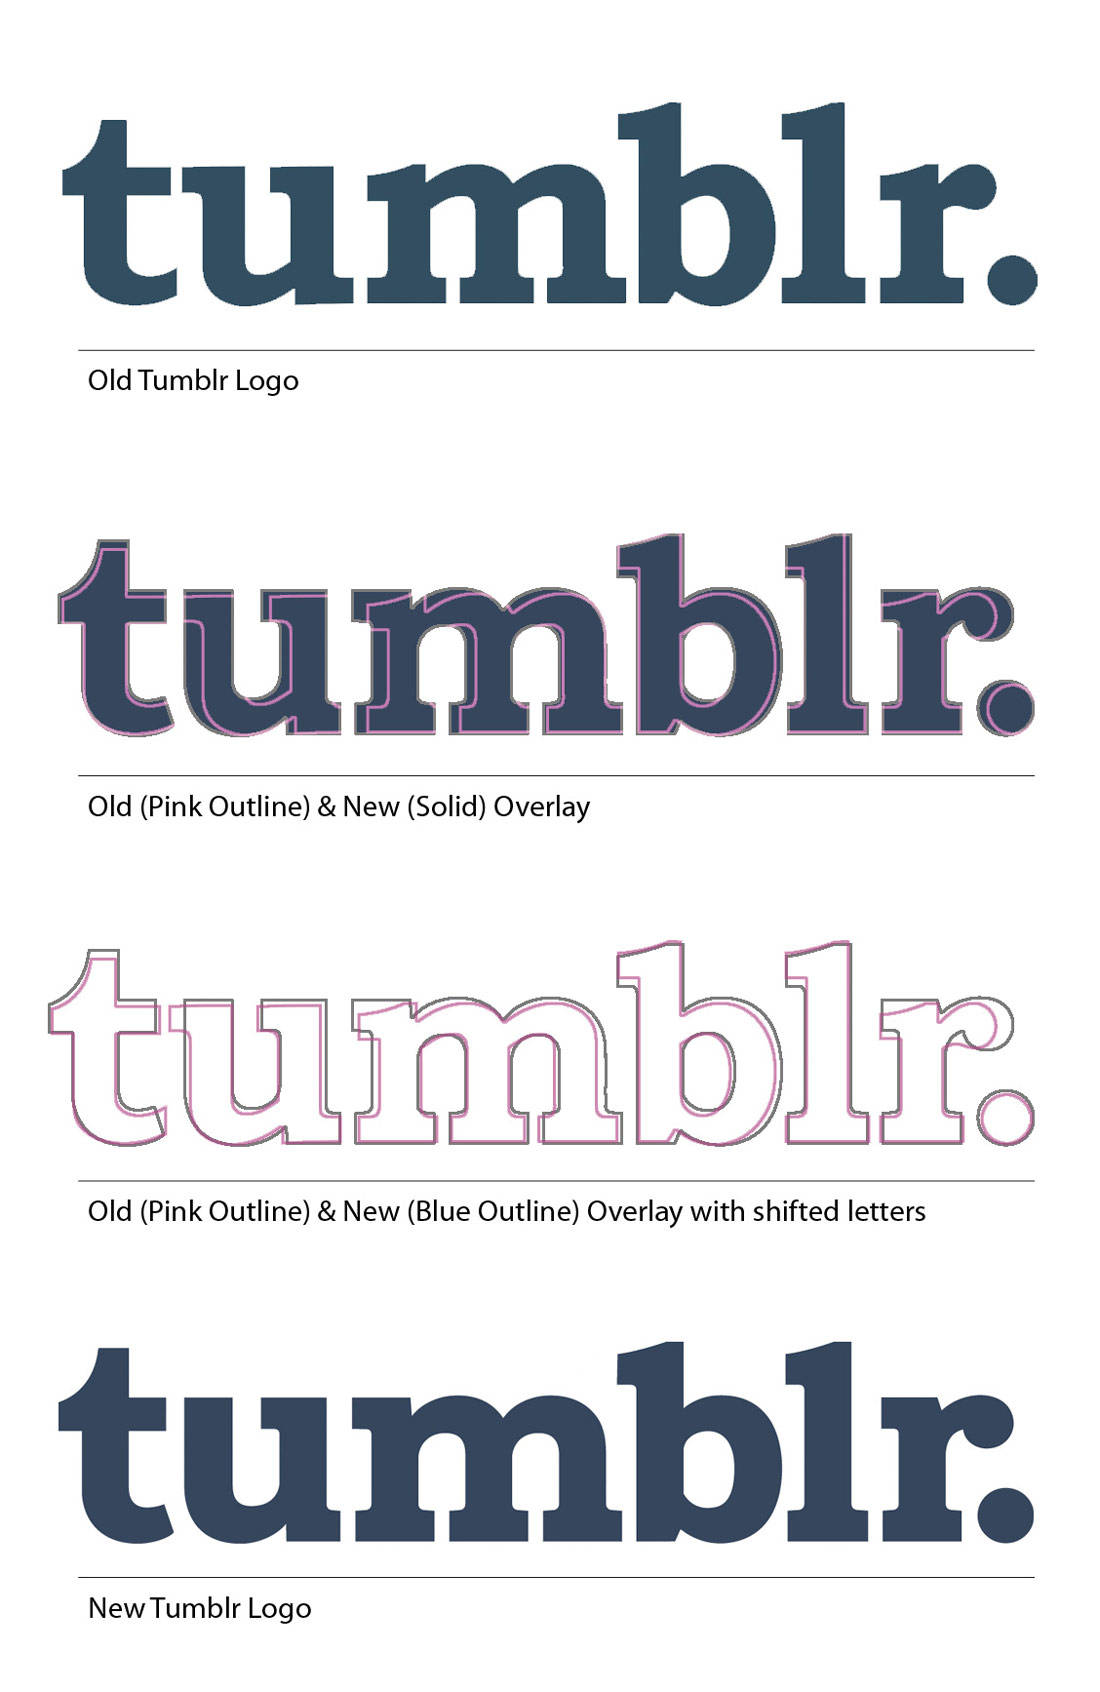 New & Old Tumblr Logo Comparison